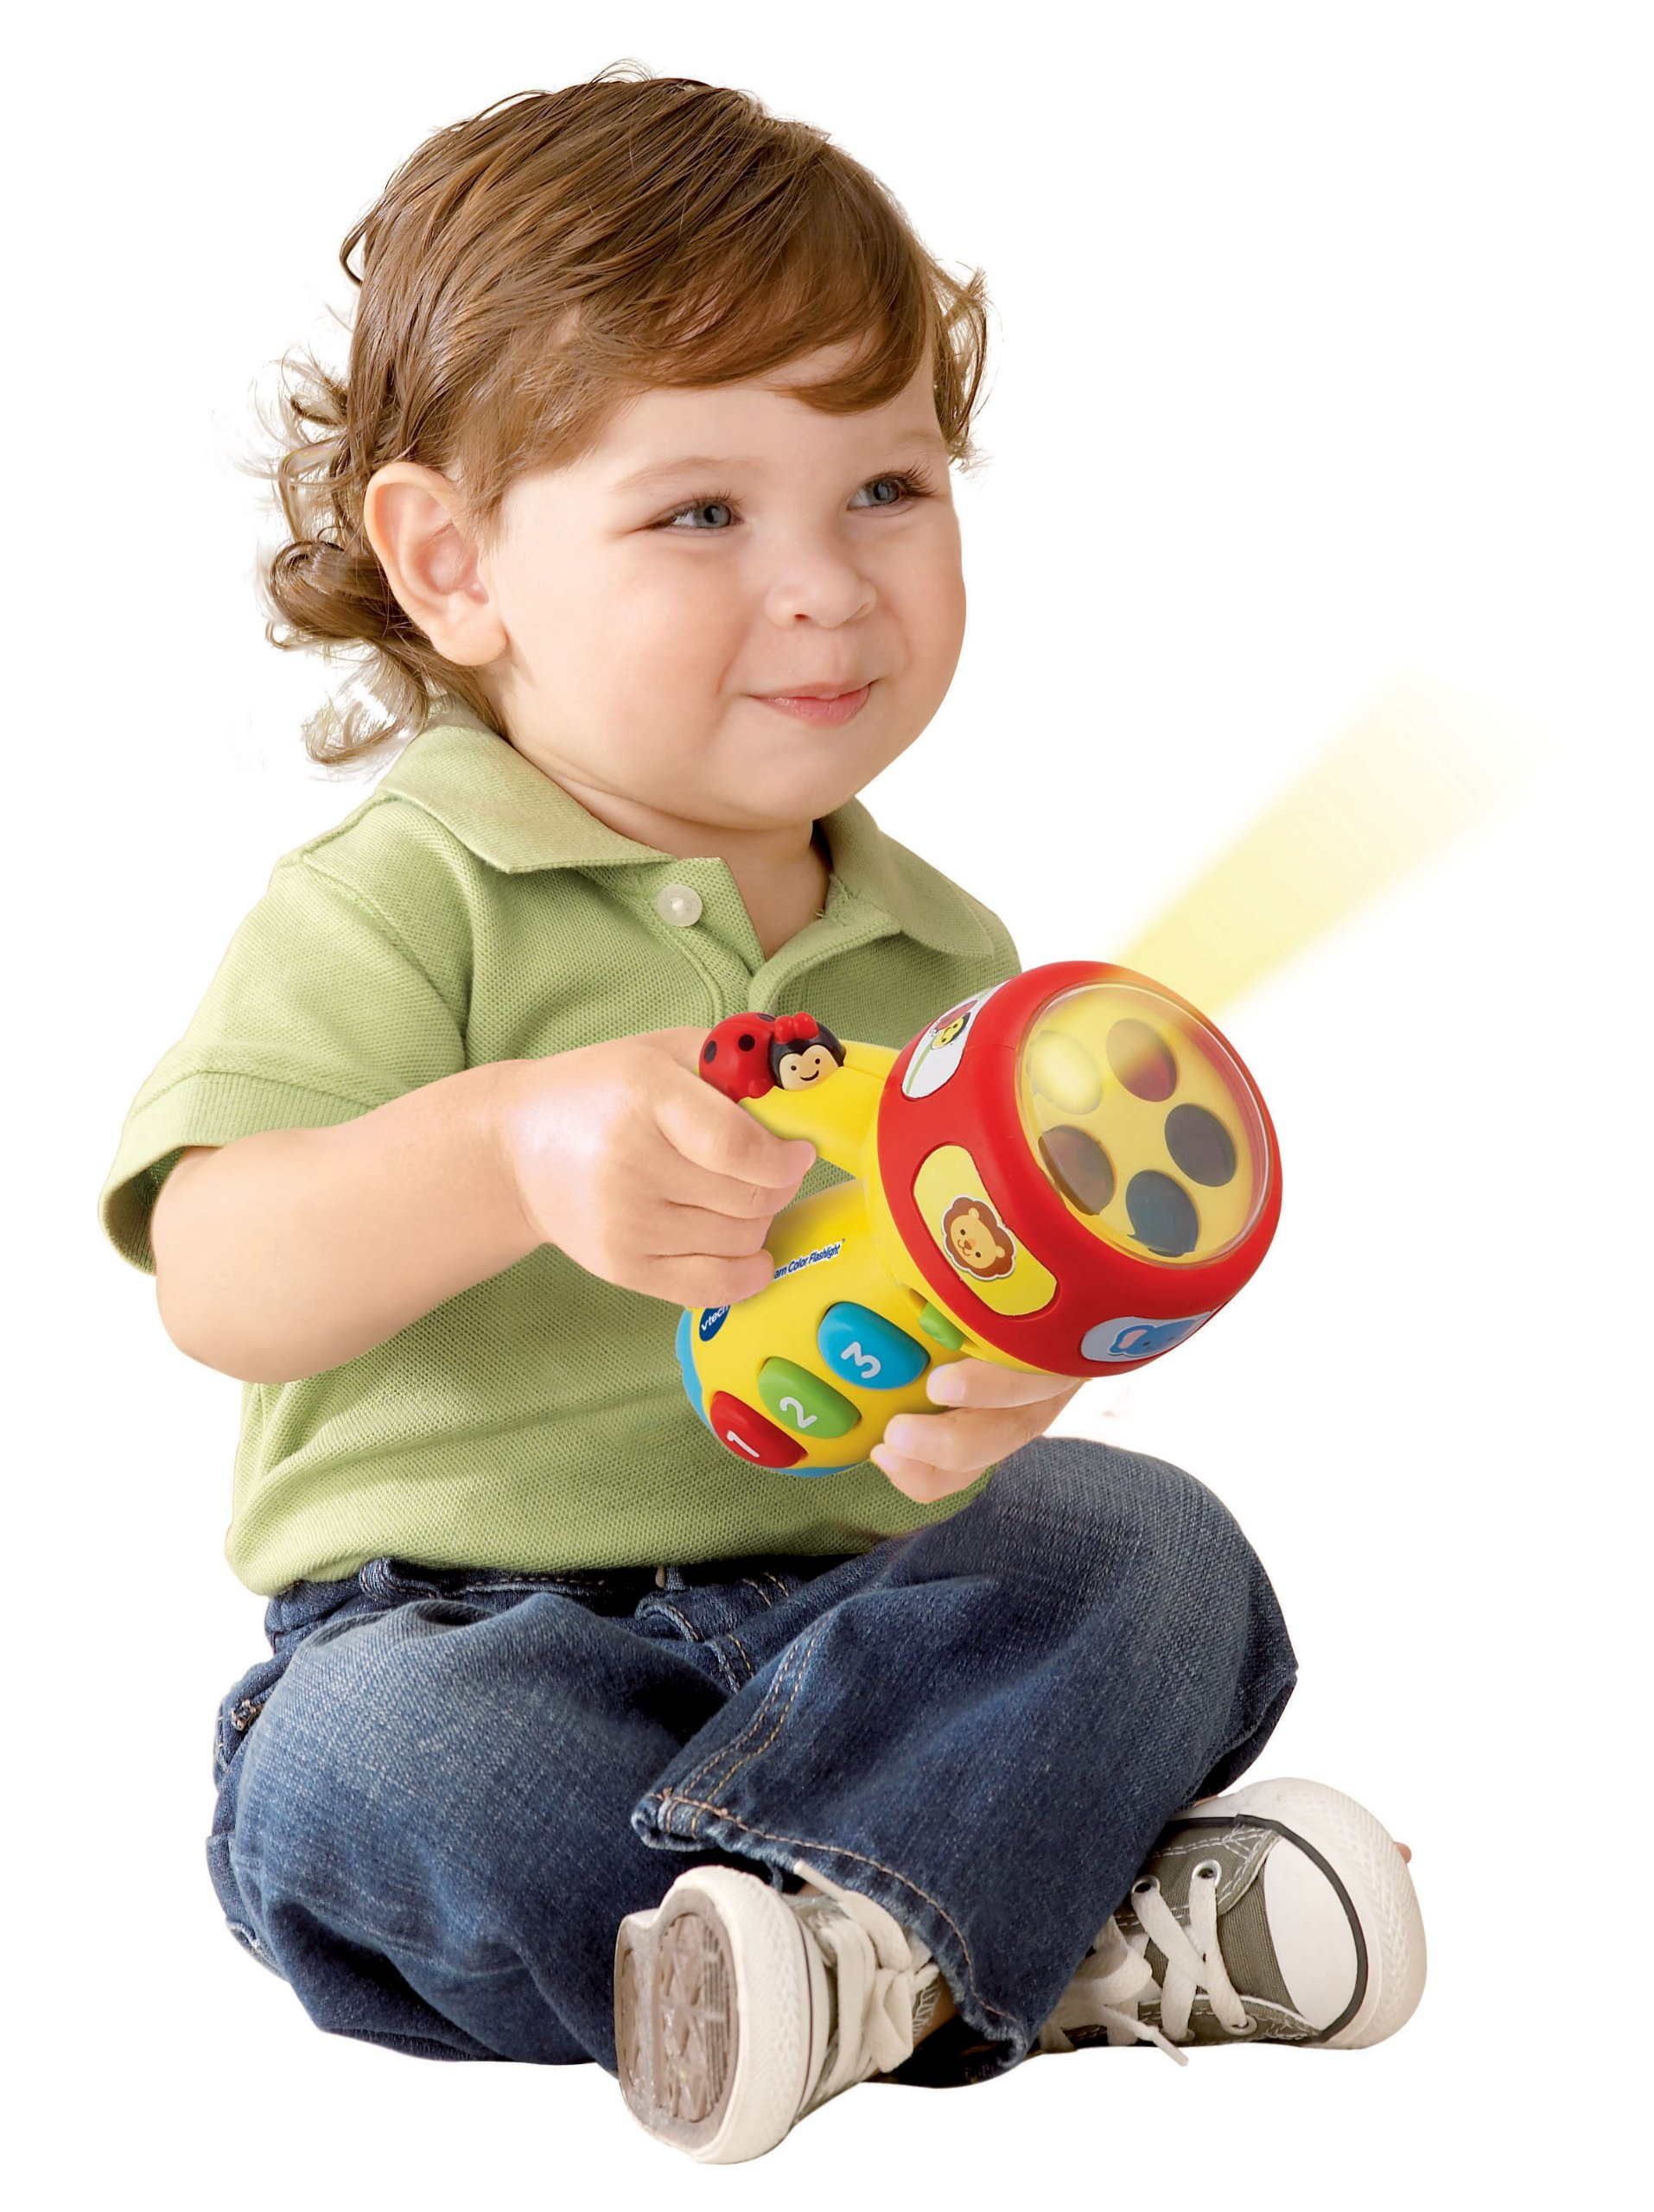 VTech Spin and Learn Color Flashlight, Yellow by VTech (Image #2)